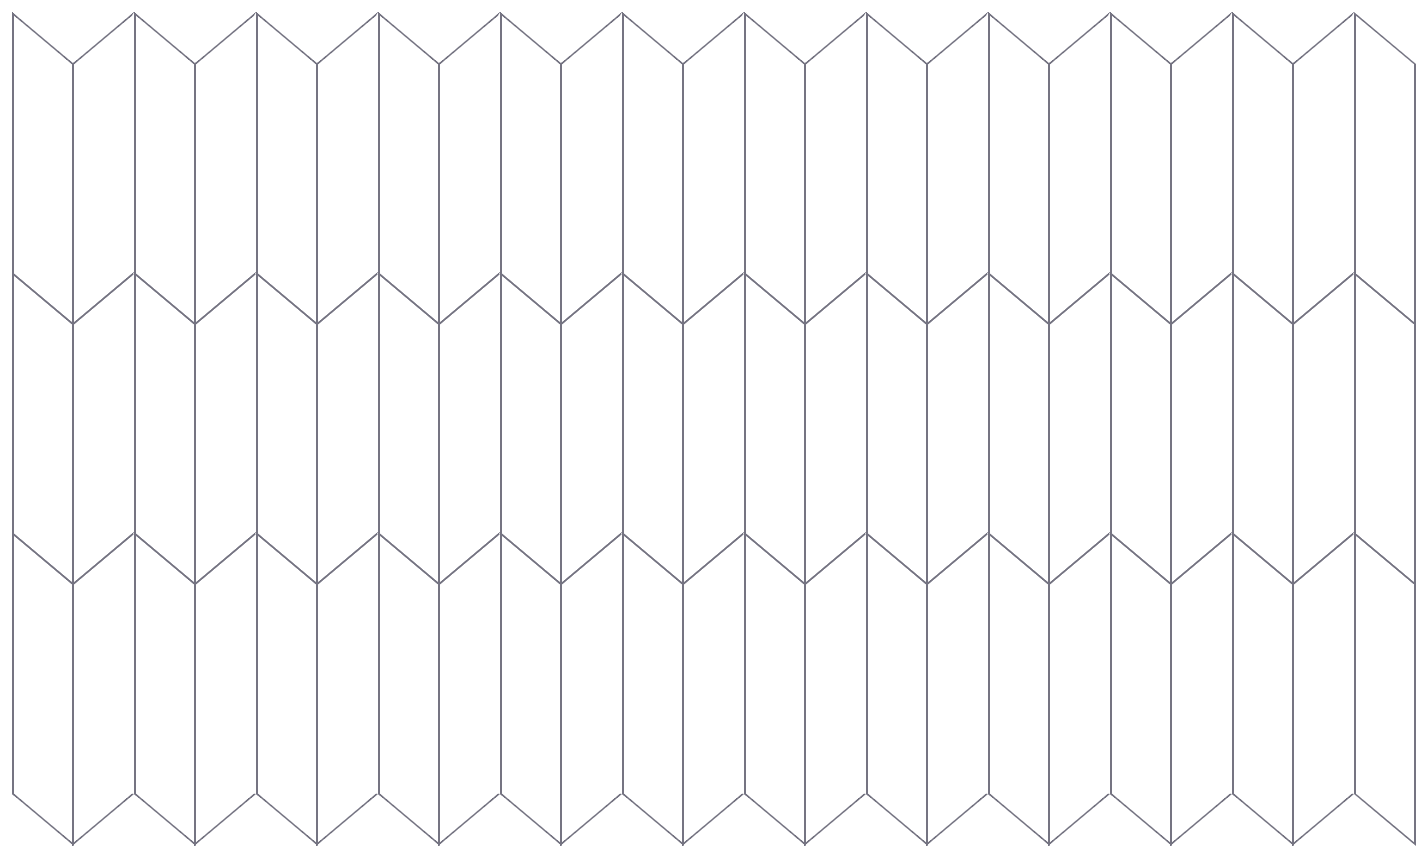 The grid layout with skewed cells so that they form repeating parallelograms instead of rectangles.